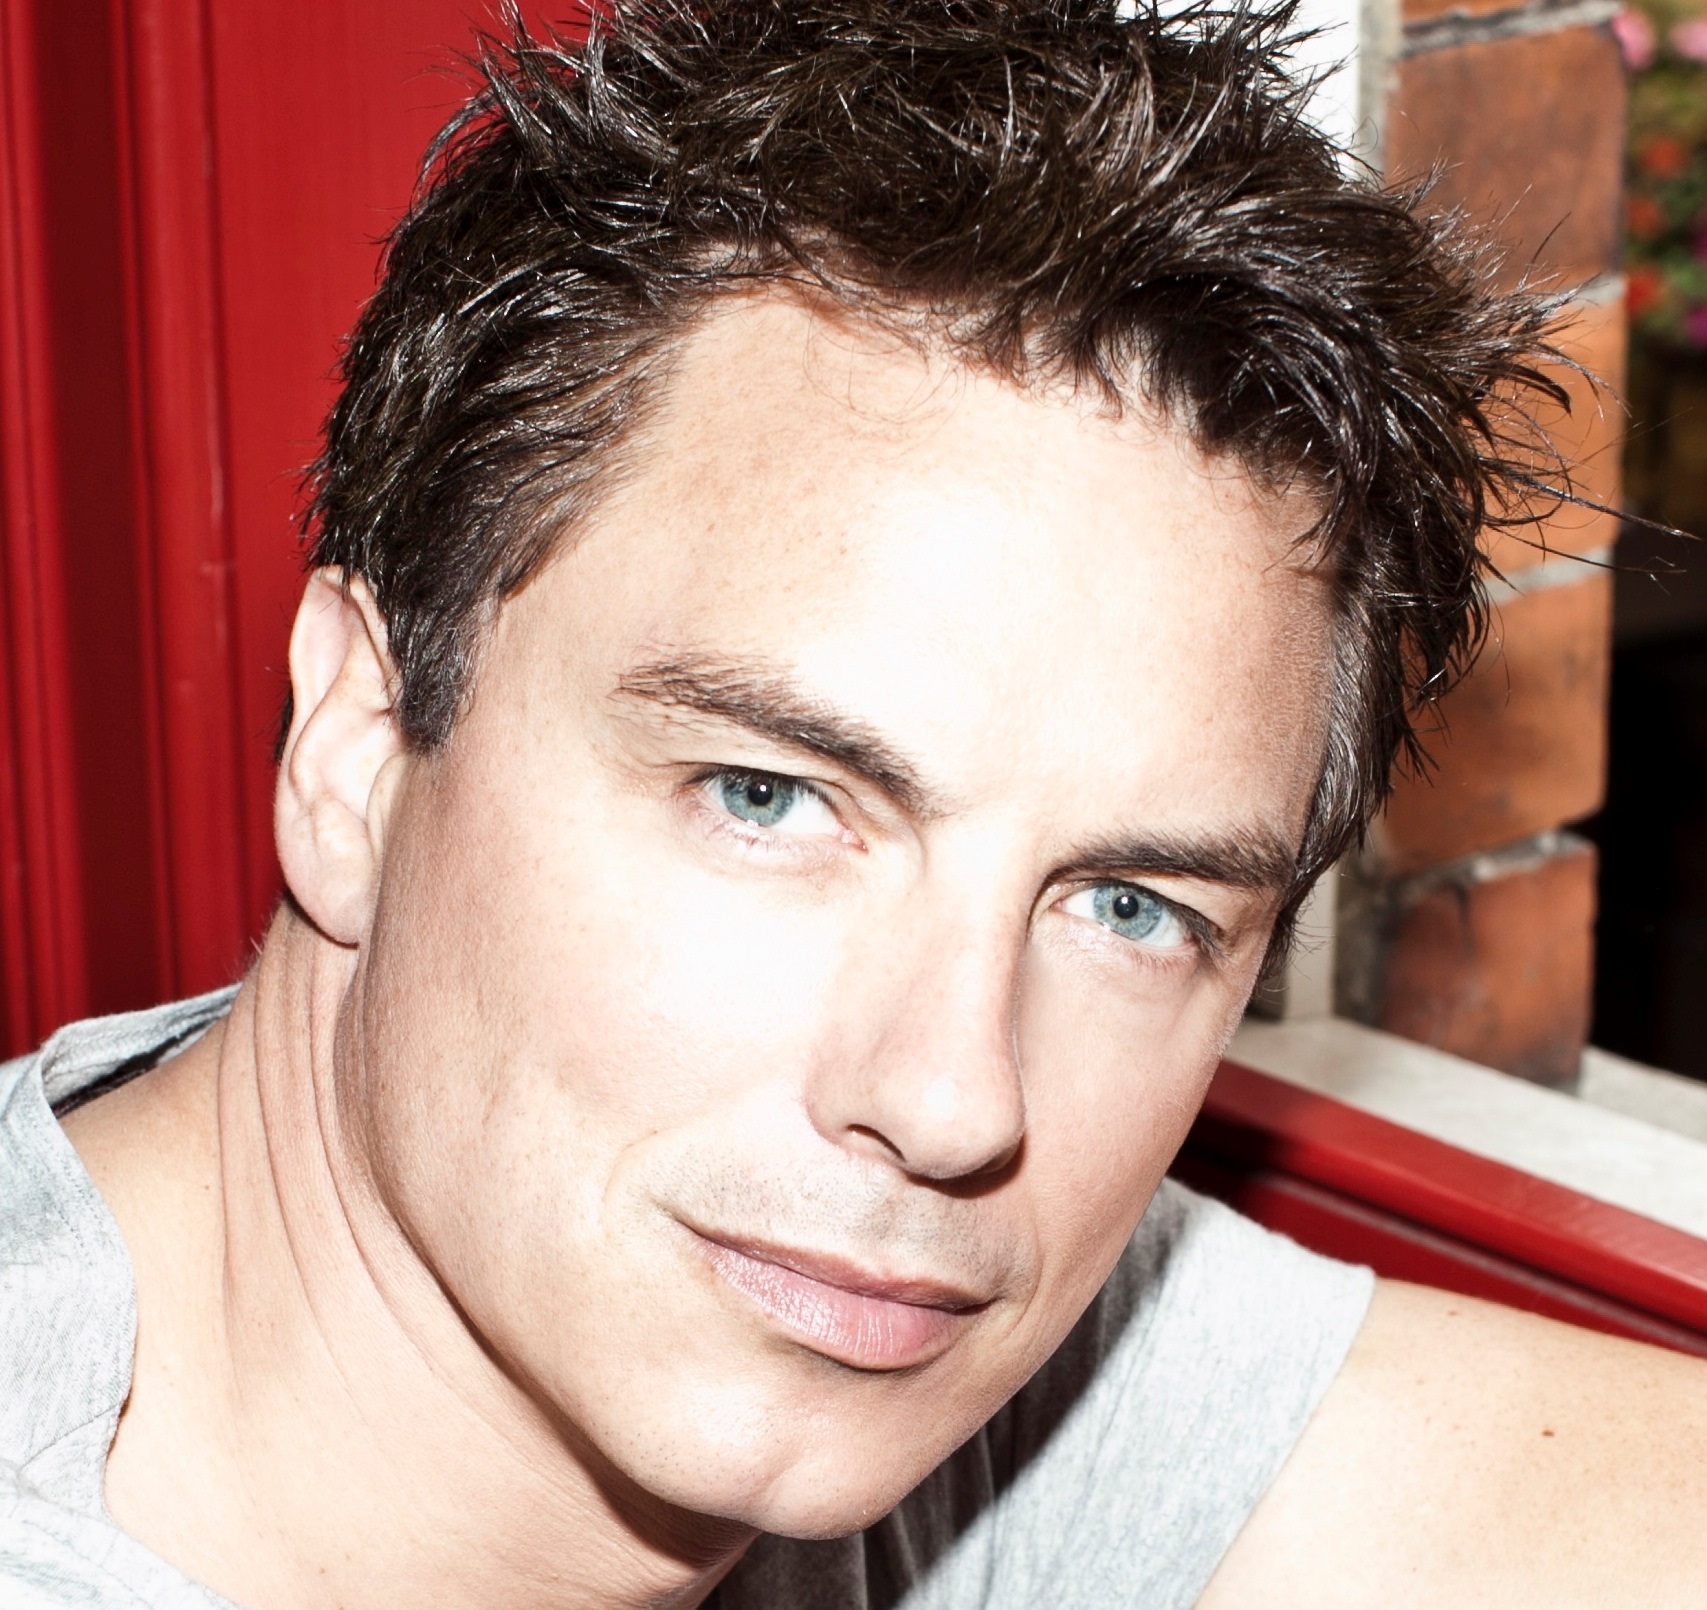 John Barrowman Lunchtime Signing